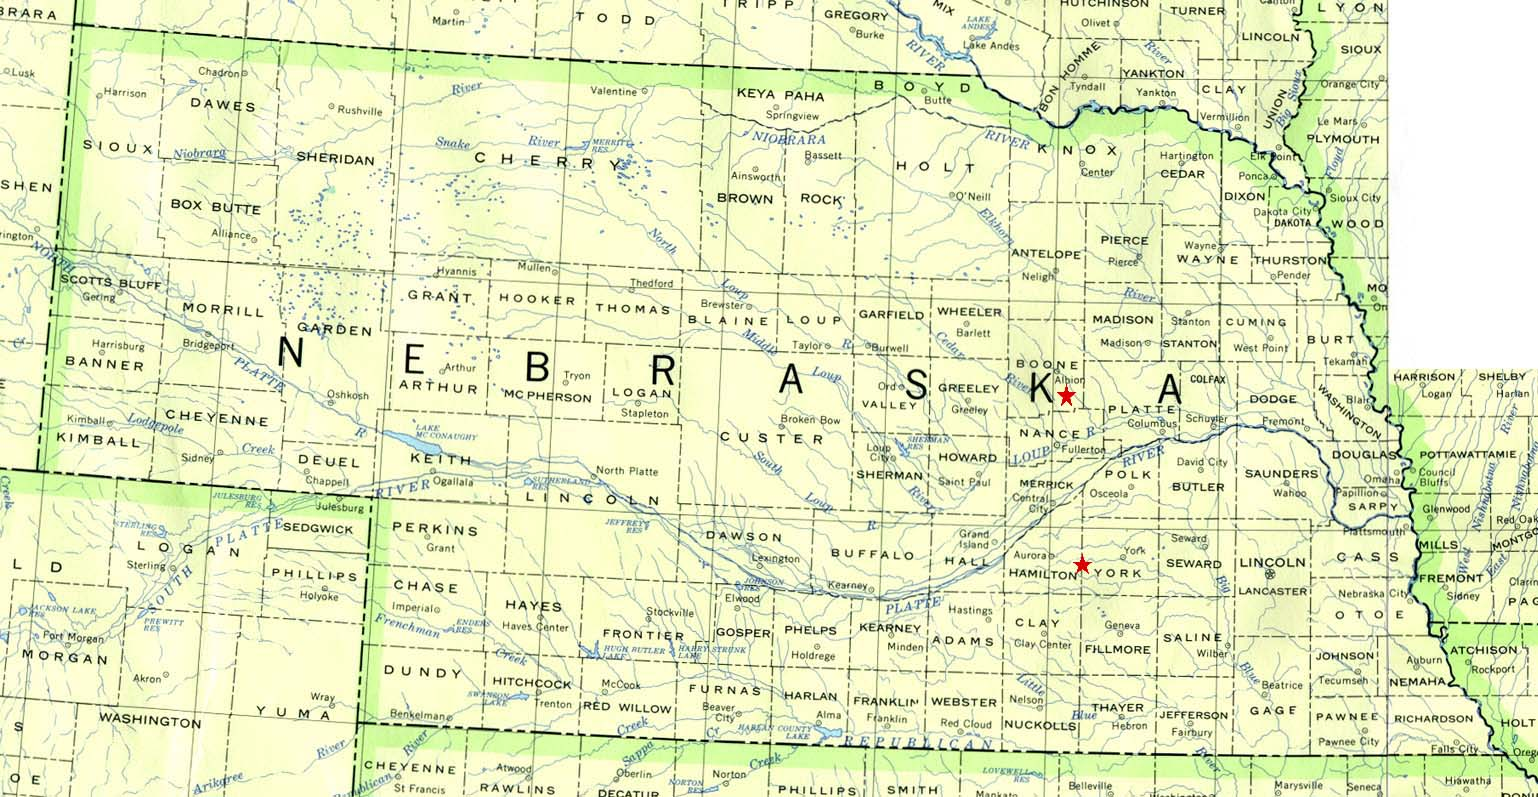 Nebraska hamilton county - York County Is The Star To The Bottom Of The Map Boone County Is The Star Above It